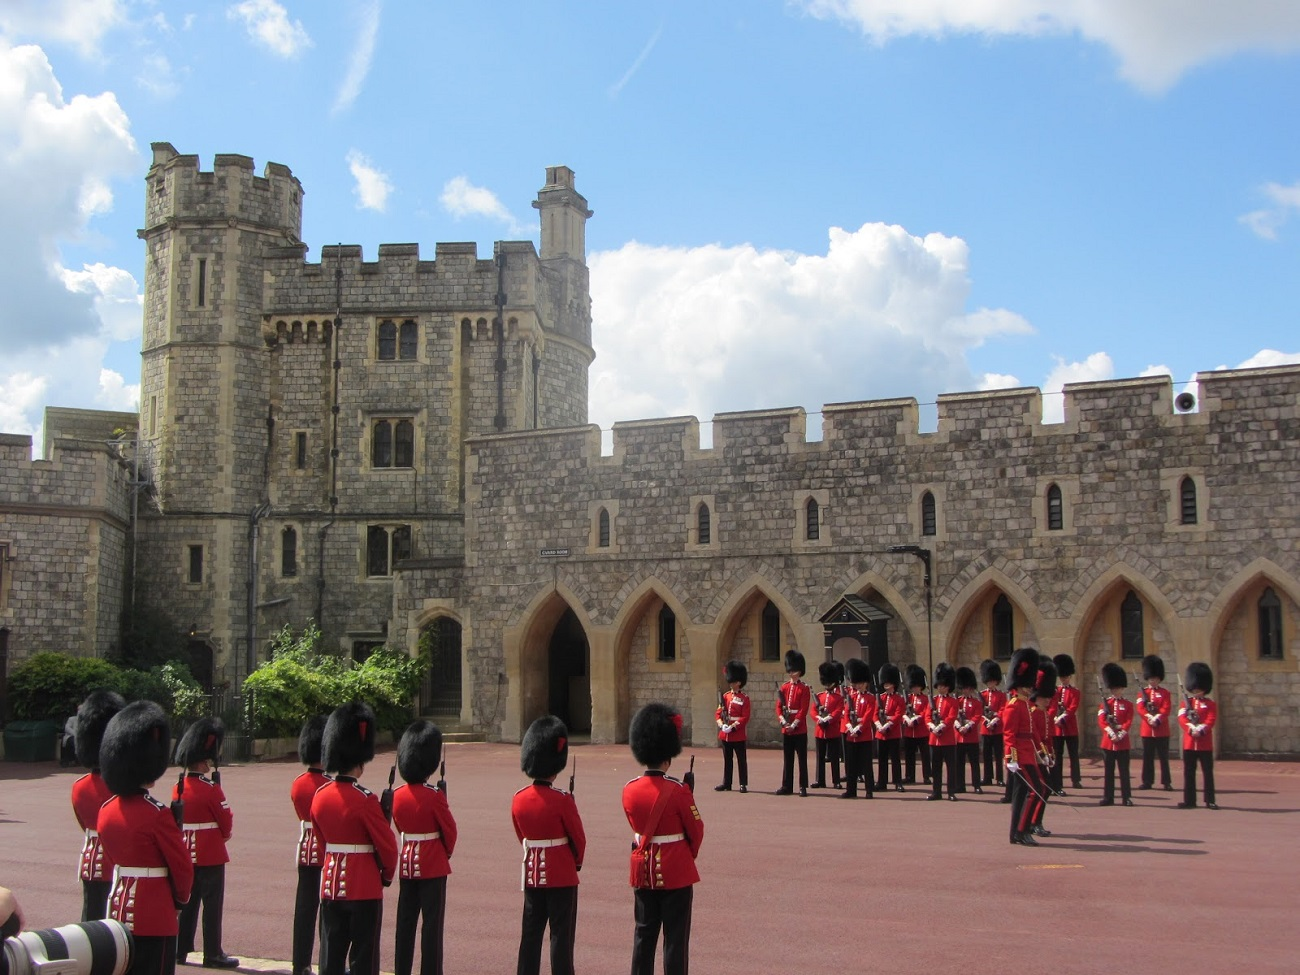 Parade specifice la Castelul Windsor din Anglia